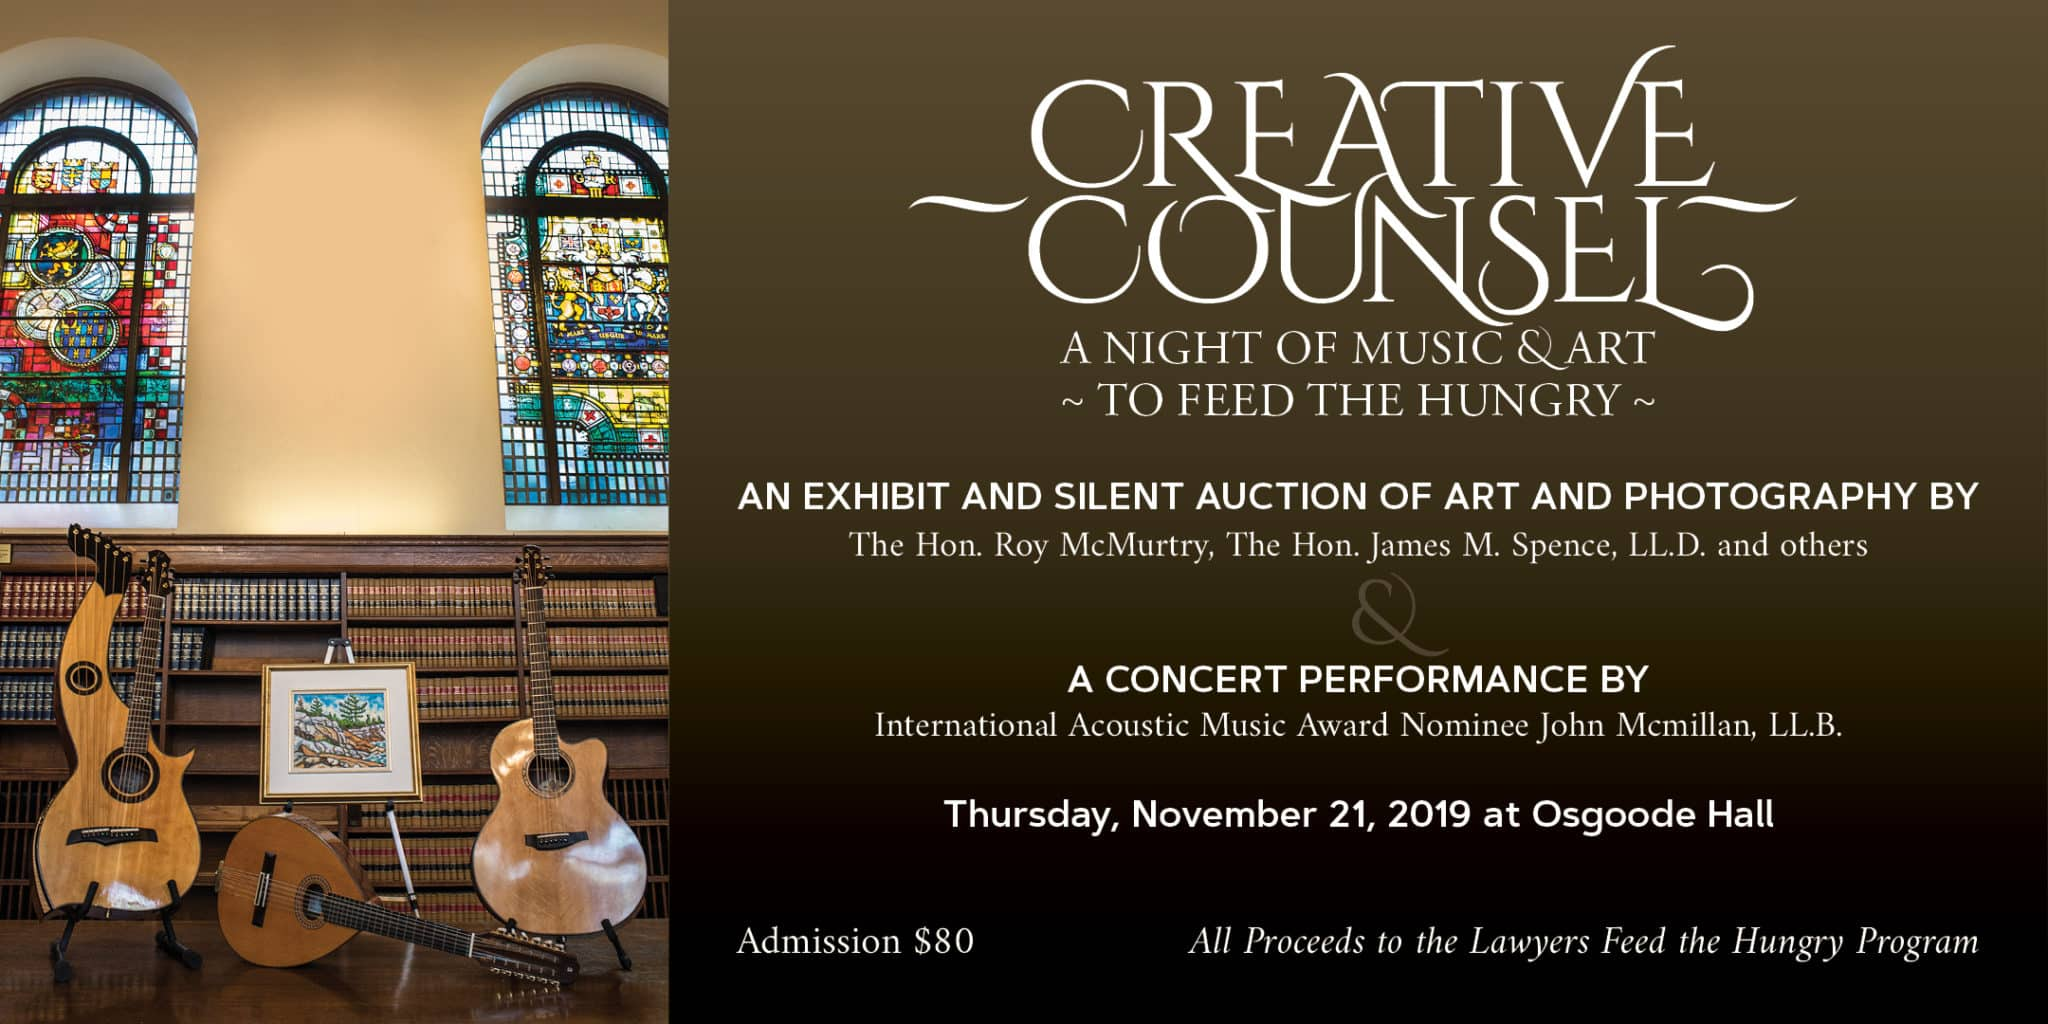 November 21, 2019 – Creative Counsel Art and Music Event